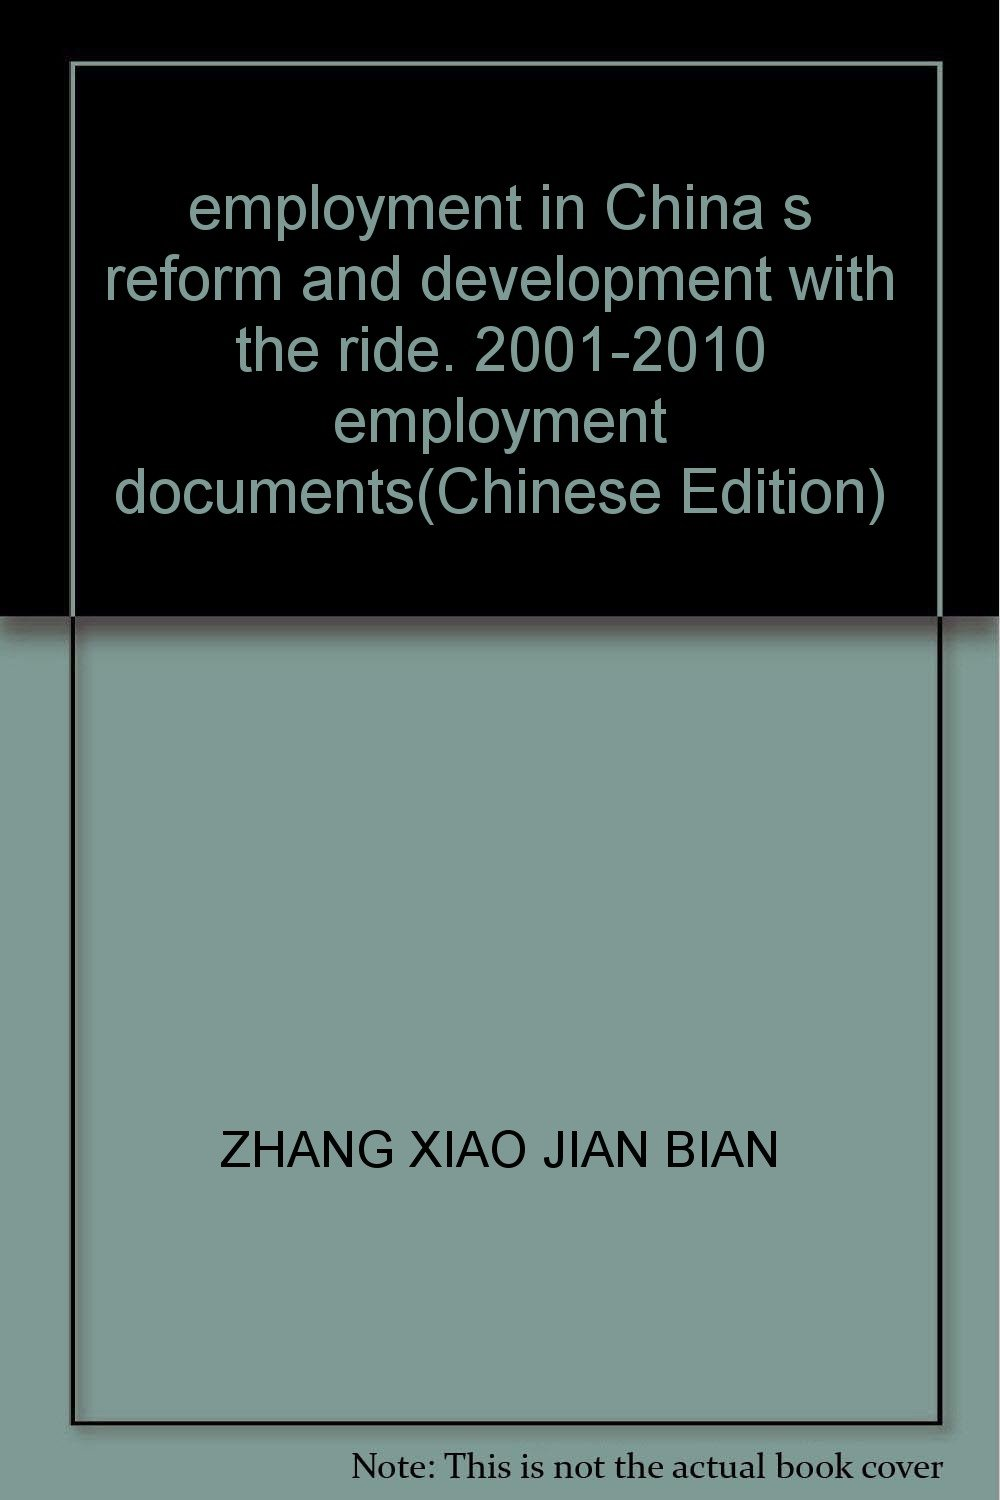 Download employment in China s reform and development with the ride. 2001-2010 employment documents(Chinese Edition) PDF